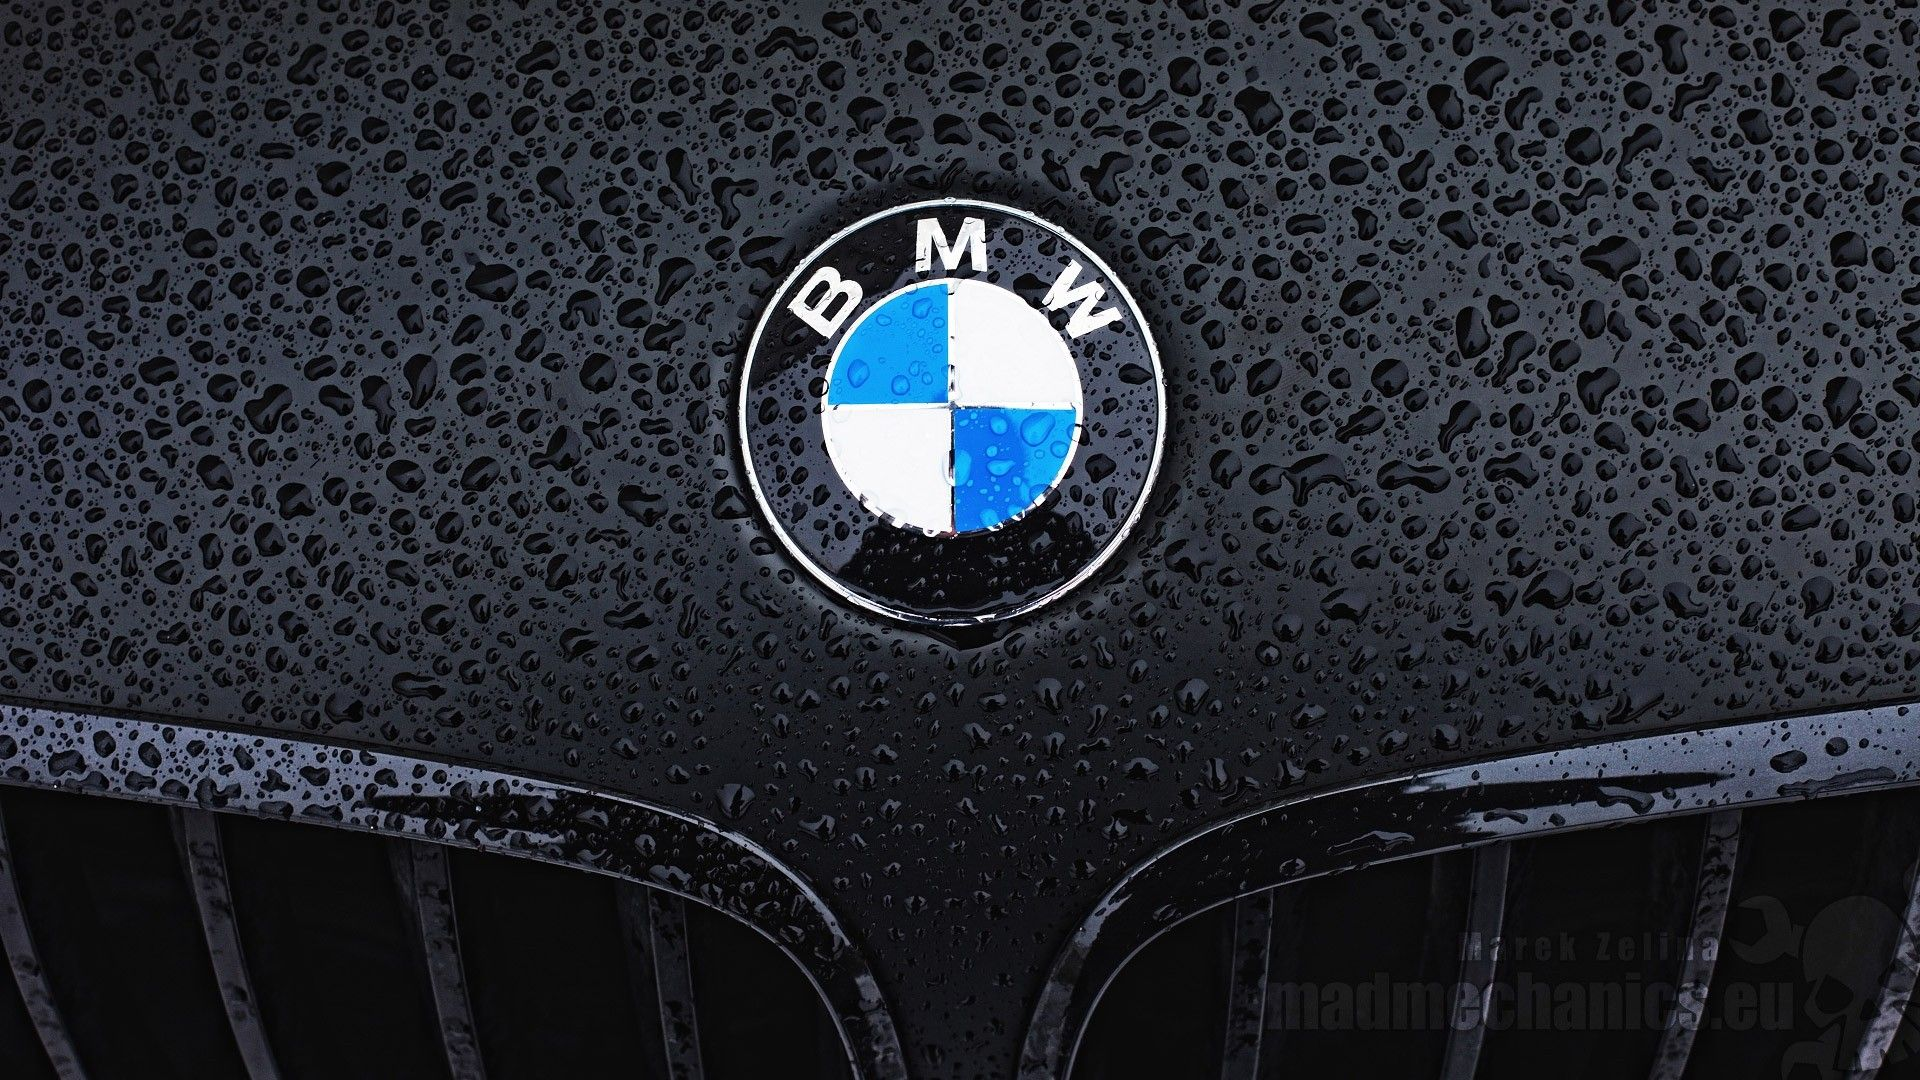 bmw car company logo hd wallpaper of logo pictures hd wallpaper